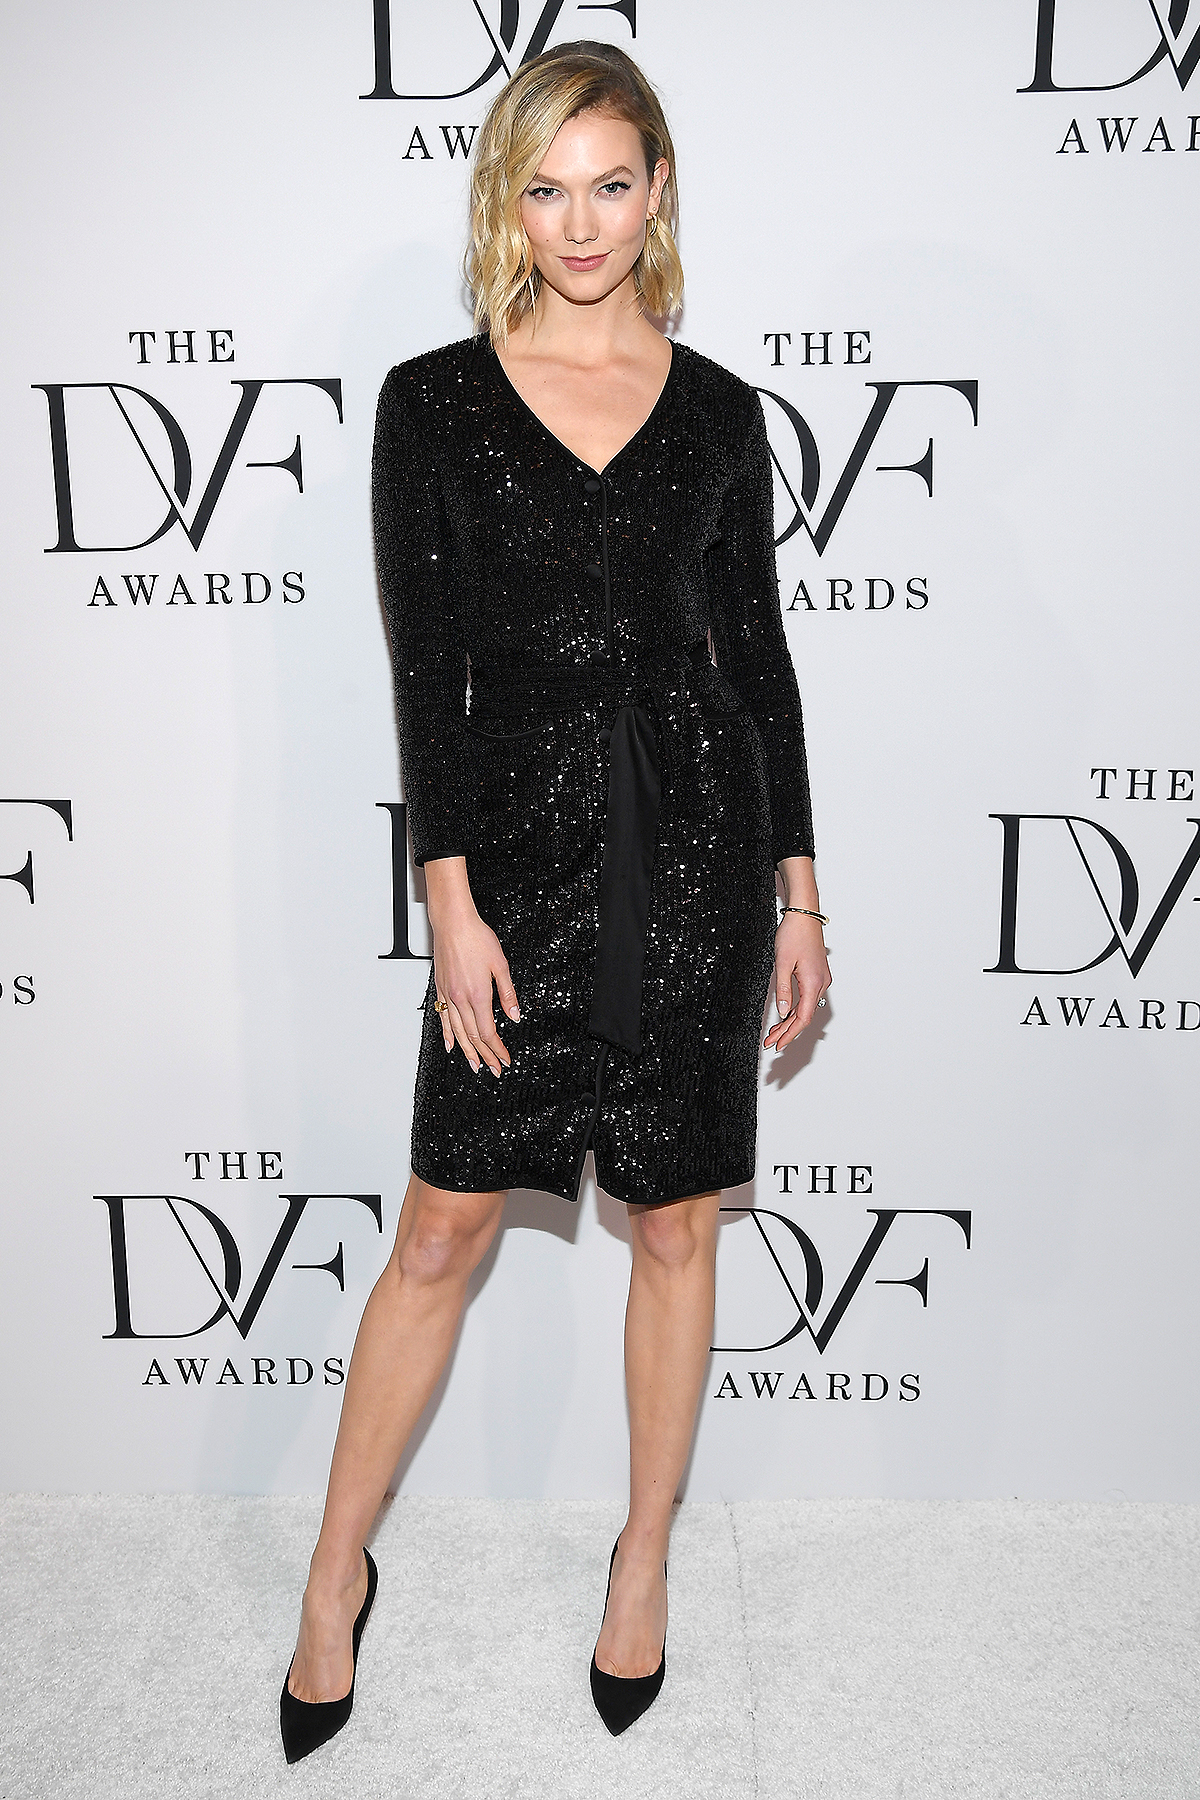 Karlie Kloss attends Diane von Furstenberg 2020 DVF Awards at on February 19, 2020 in Washington, DC.